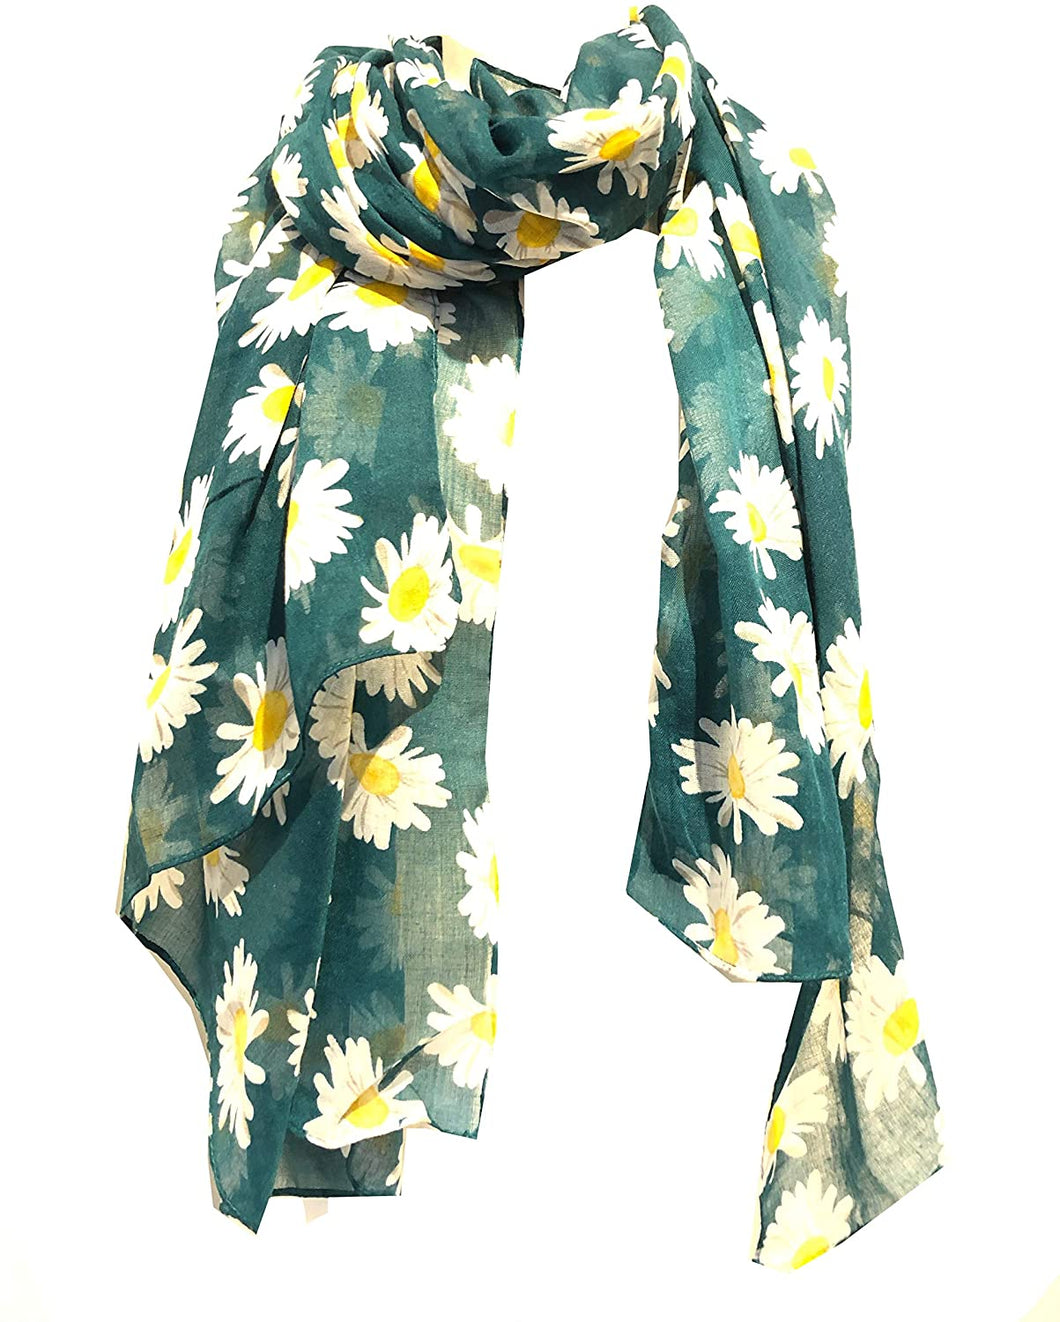 Pamper Yourself Now Green Daisy Scarf Lovely Soft Scarf